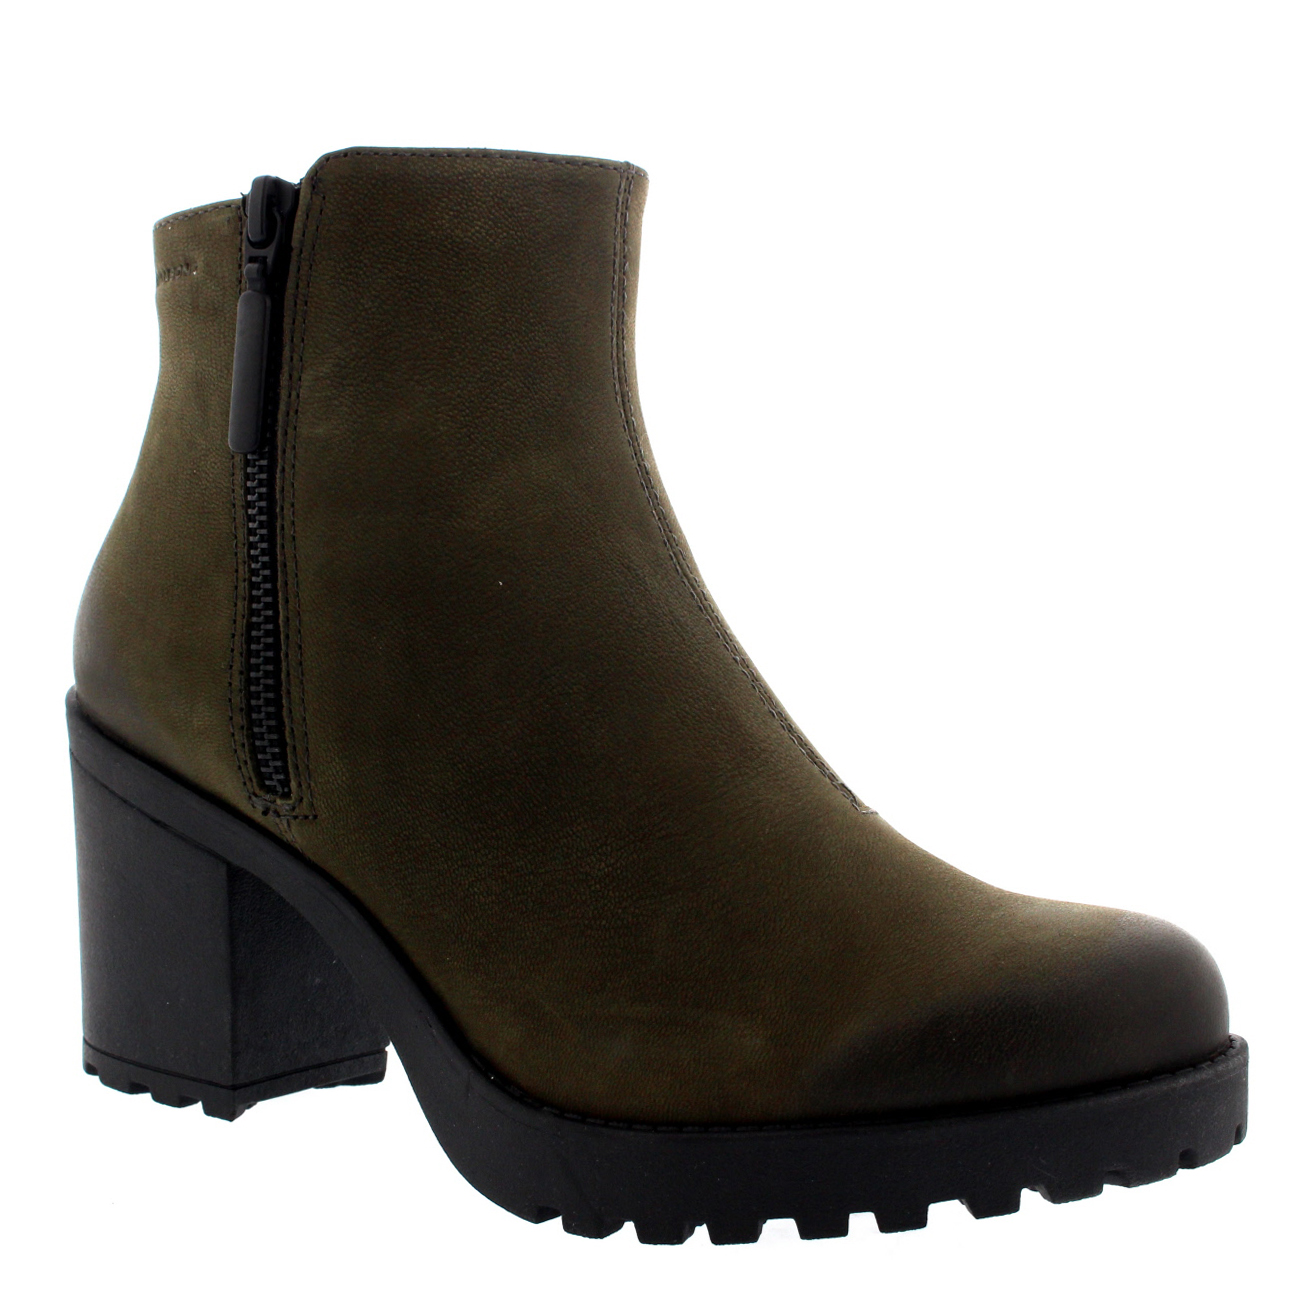 womens vagabond grace zip suede block heel festival casual ankle boots us 5 5 10 ebay. Black Bedroom Furniture Sets. Home Design Ideas